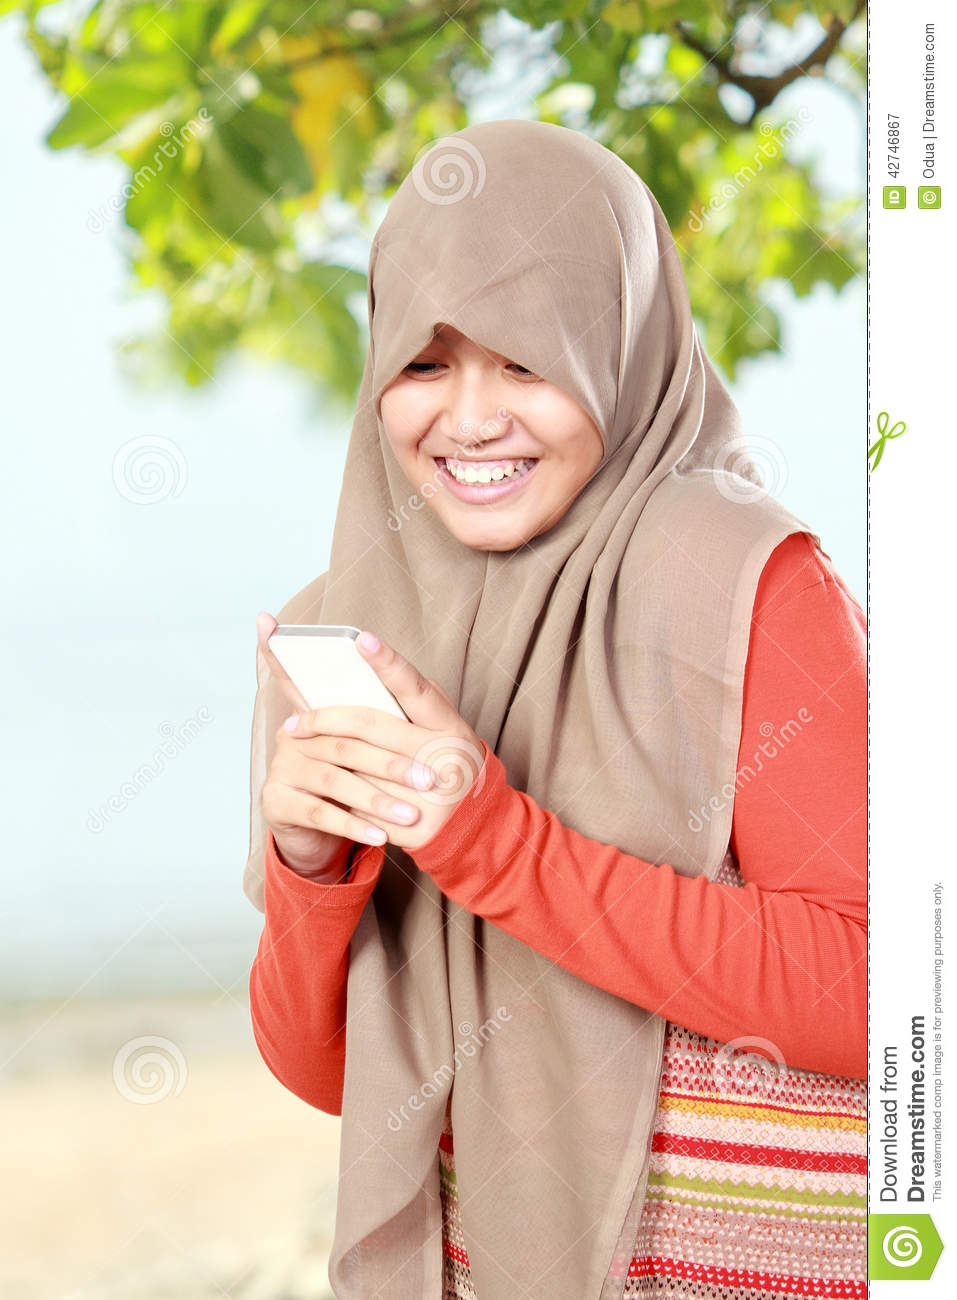 Cute smiling young girl holding a cell phone text a message